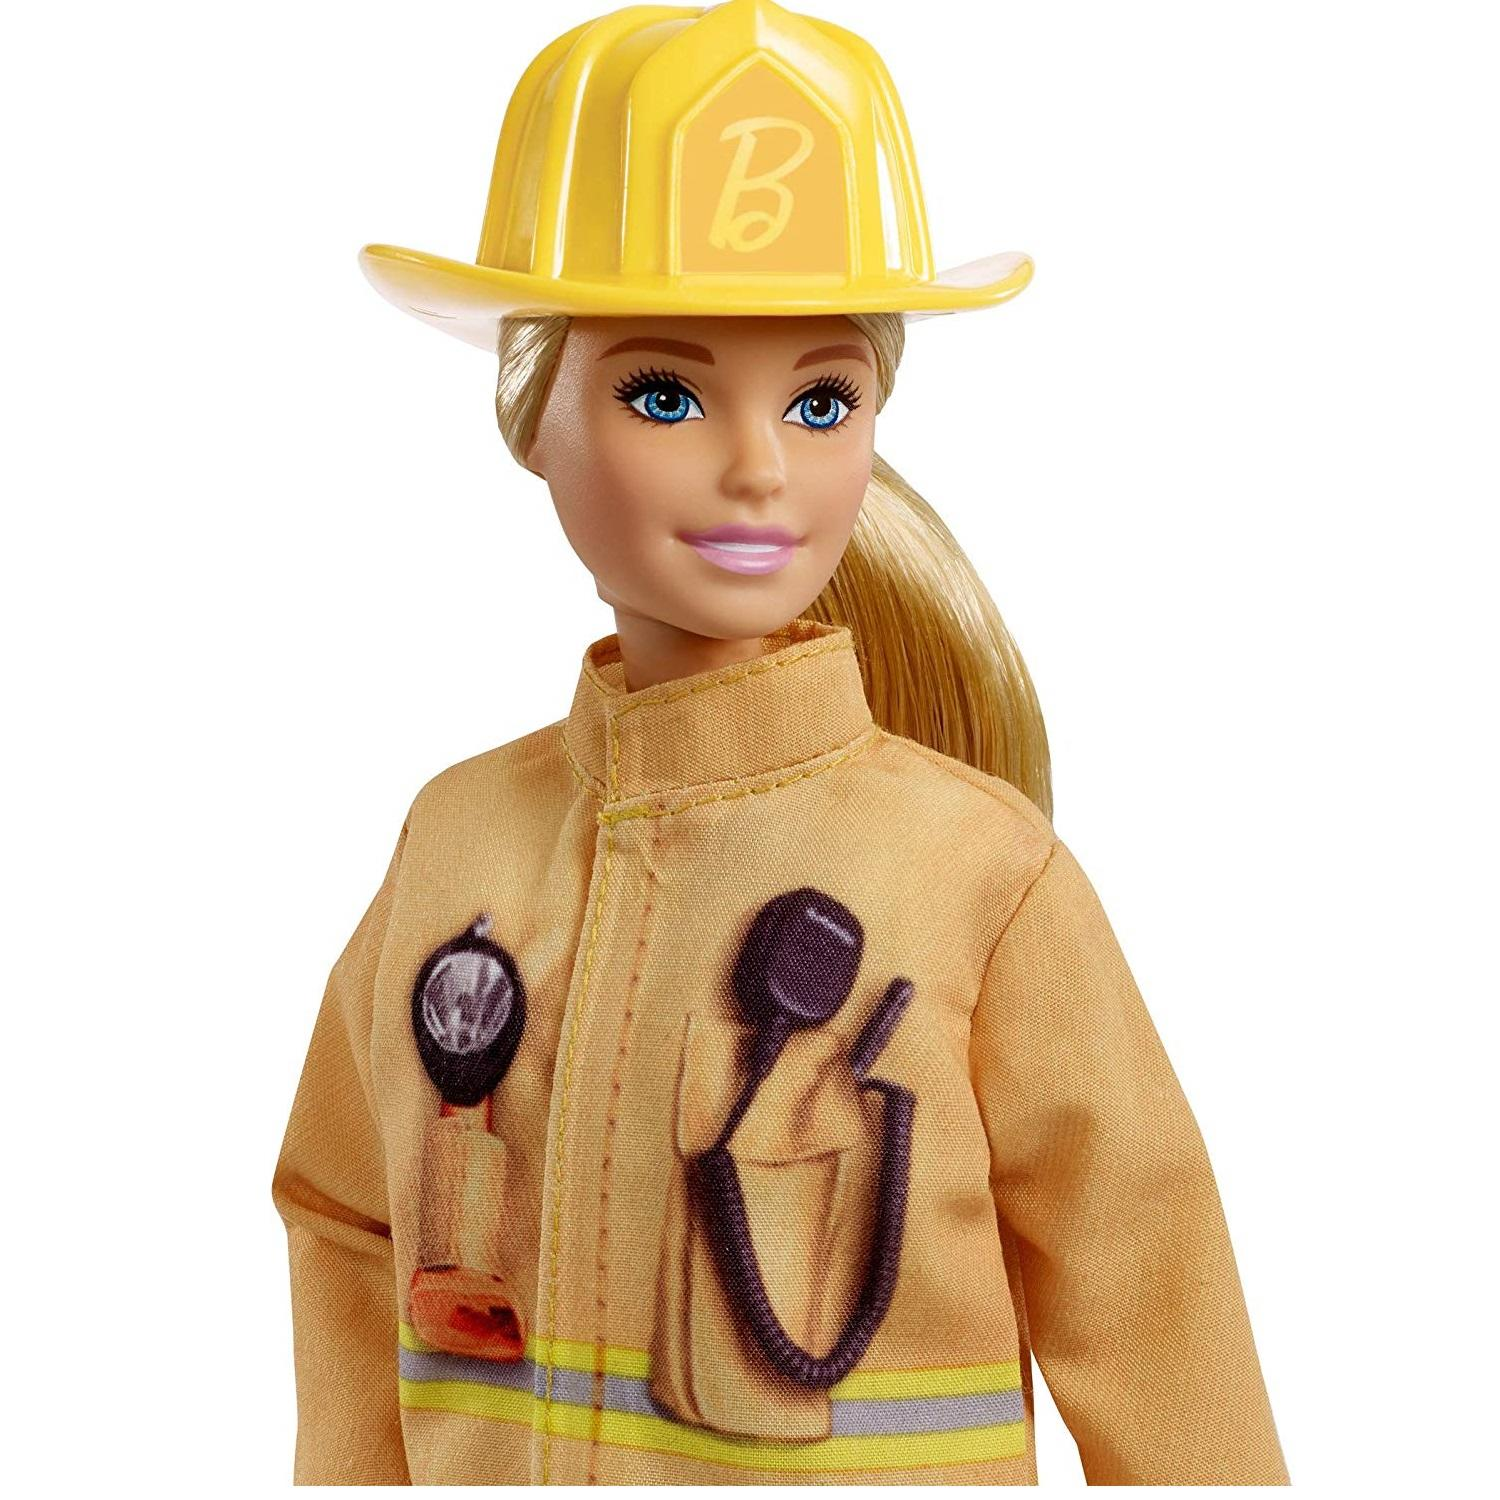 Barbie 60th Anniversary Firefighter Career Doll2